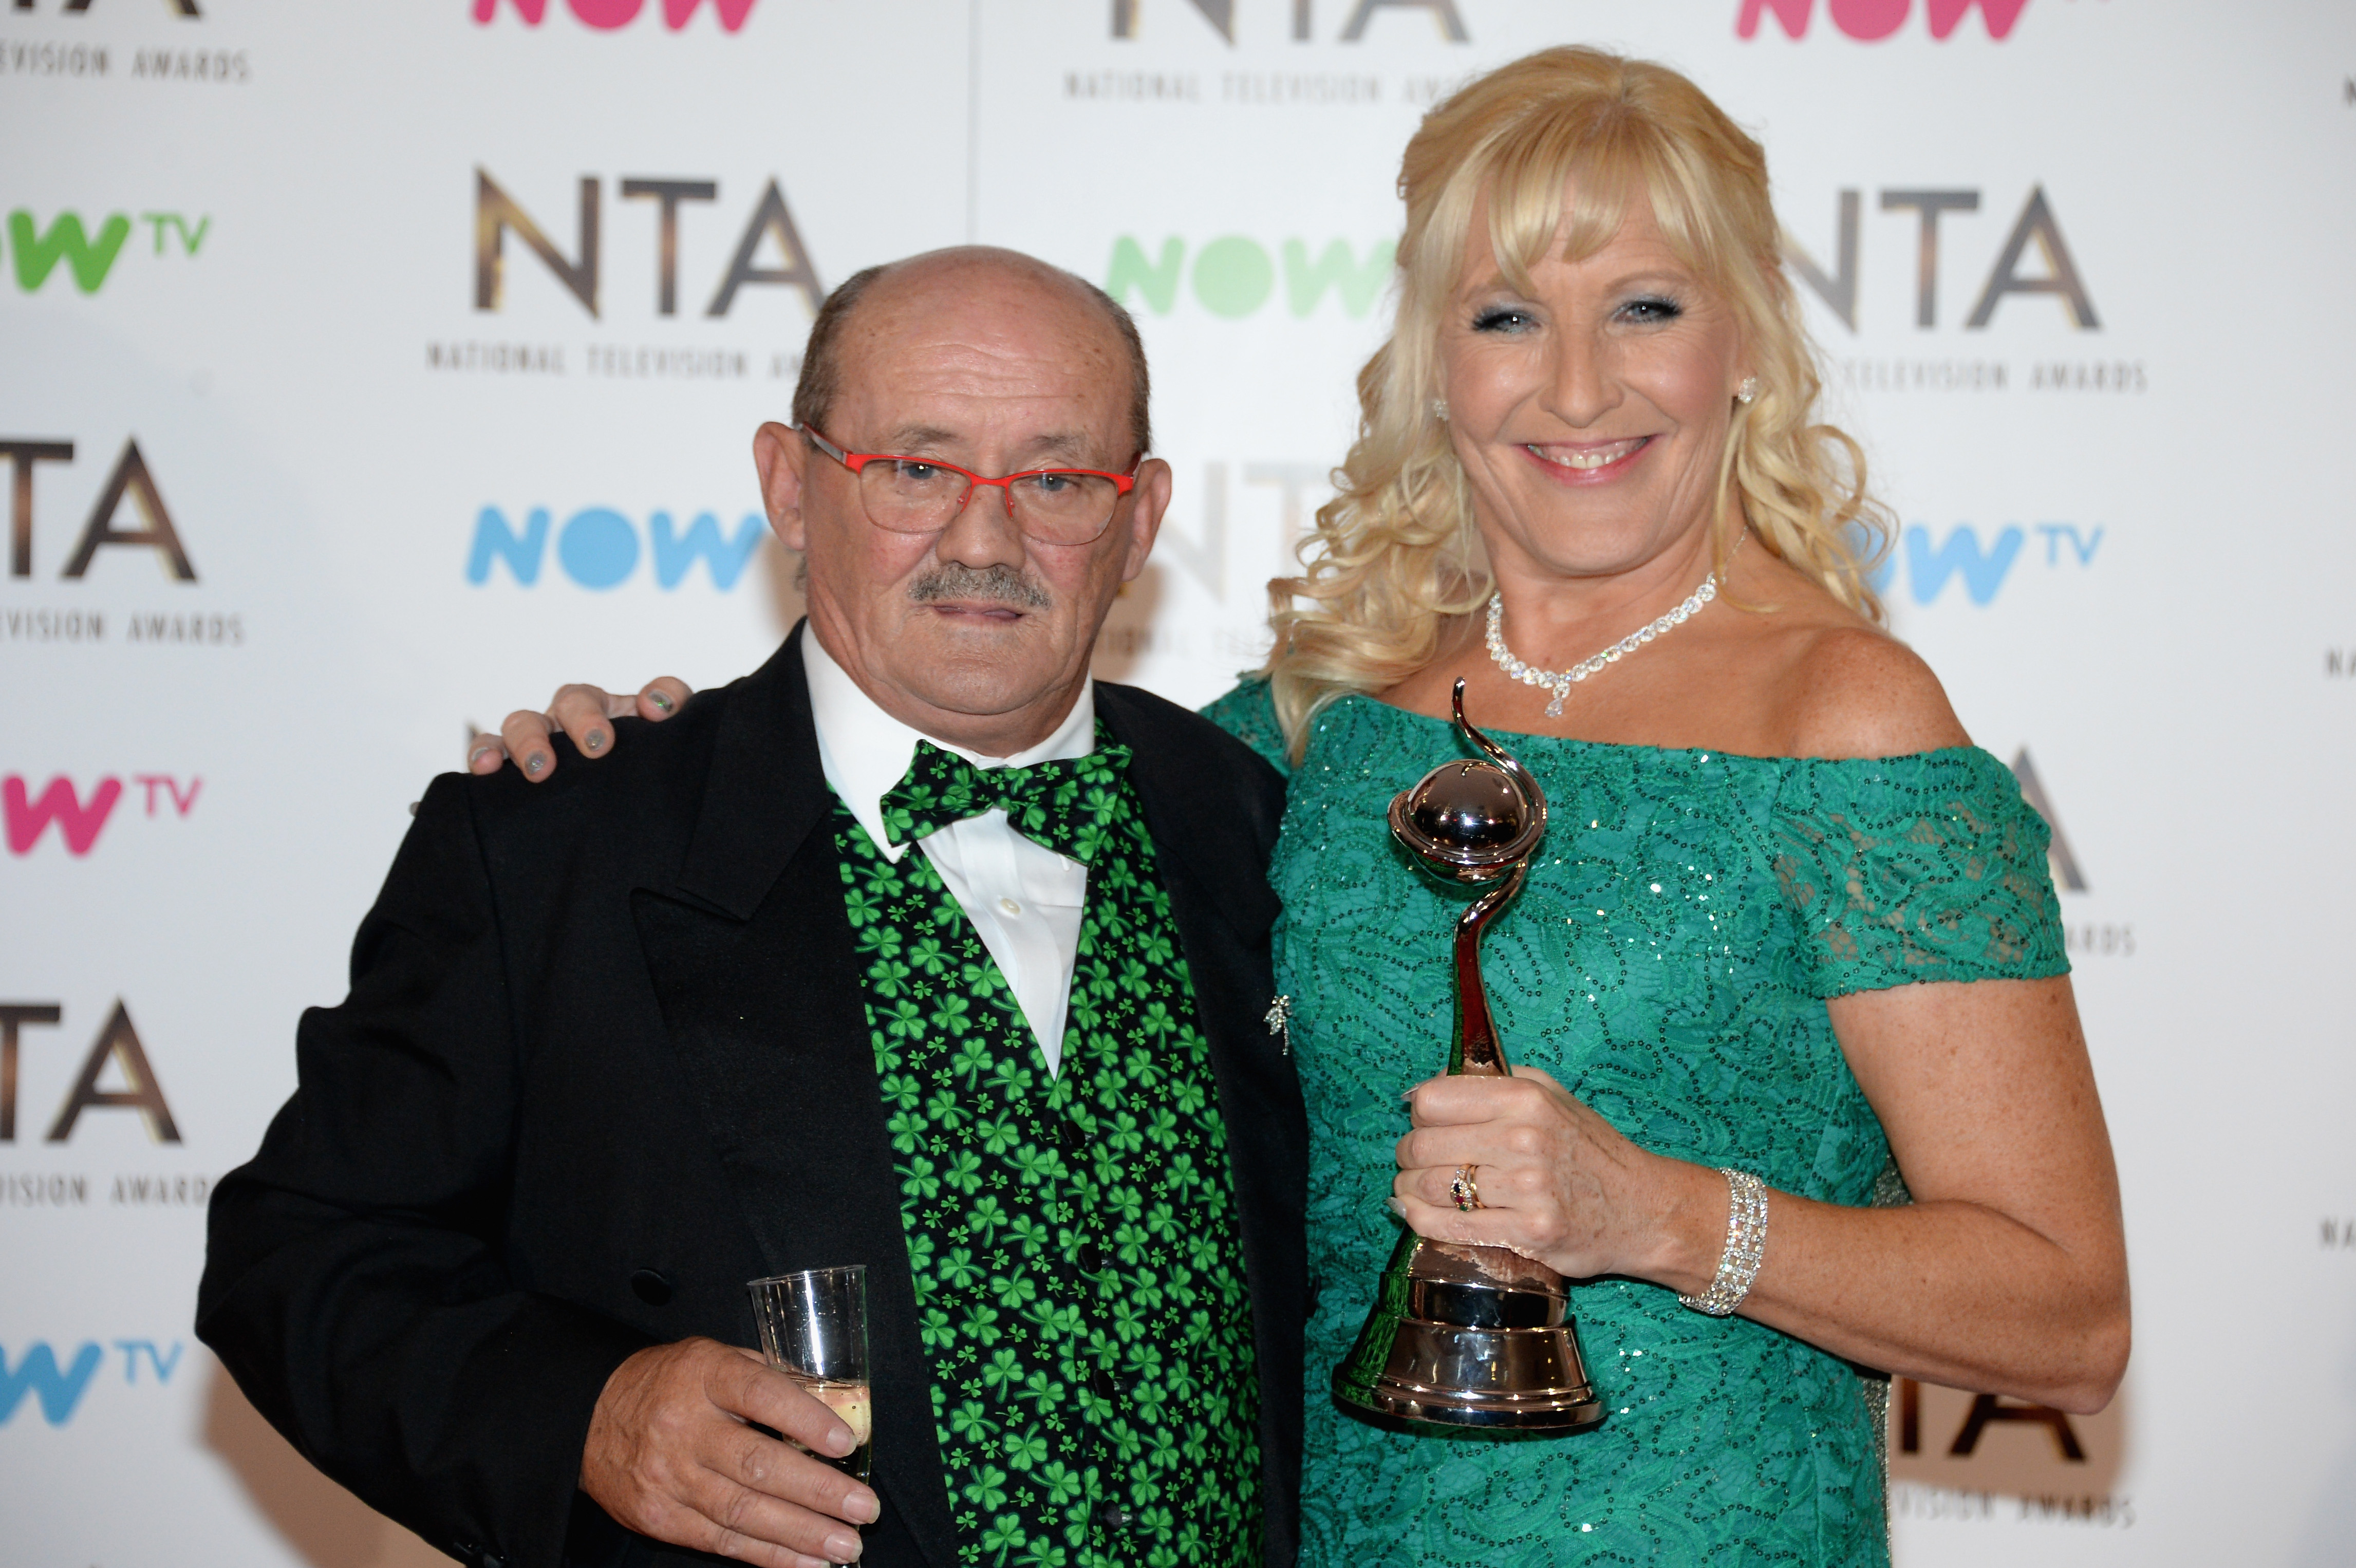 LONDON, ENGLAND - JANUARY 25:  Brendan and Jennifer O'Carroll, winners of the Best Comedy Award for Mrs Brown's Boys during the National Television Awards at The O2 Arena on January 25, 2017 in London, England.  (Photo by Anthony Harvey/Getty Images)